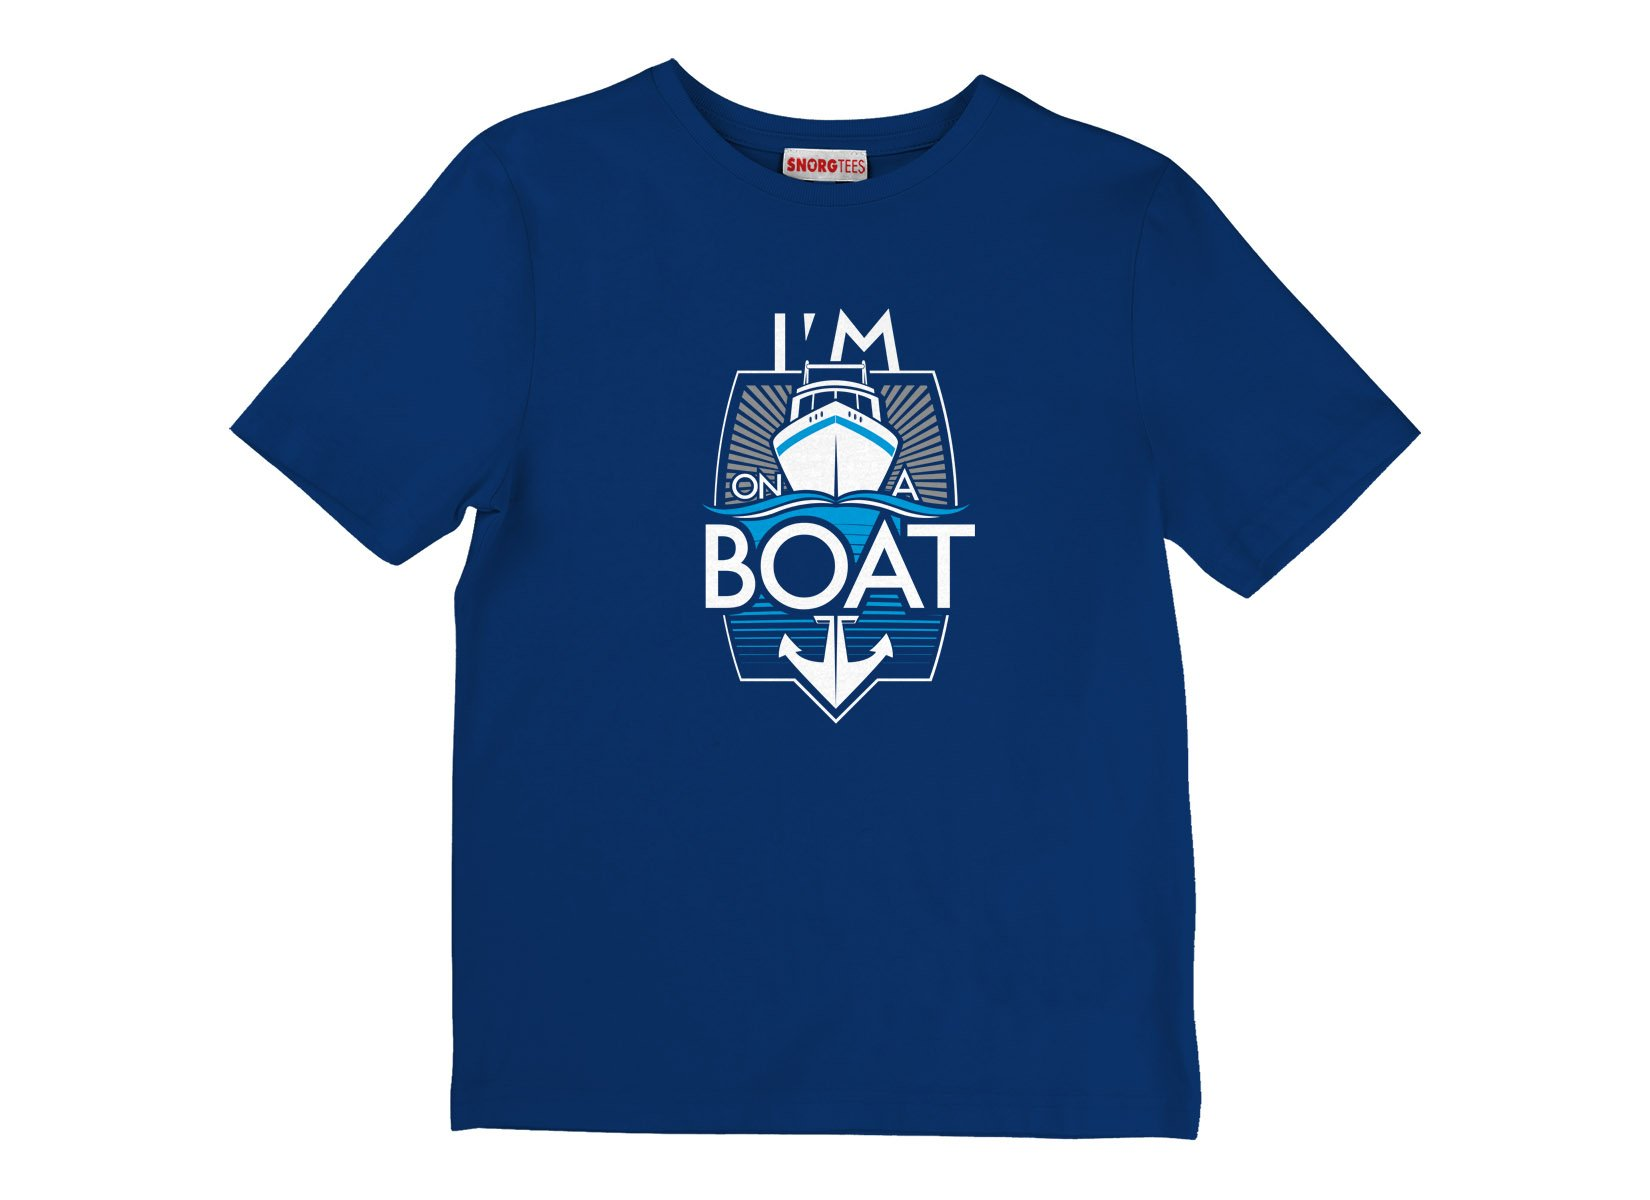 I'm On A Boat on Kids T-Shirt